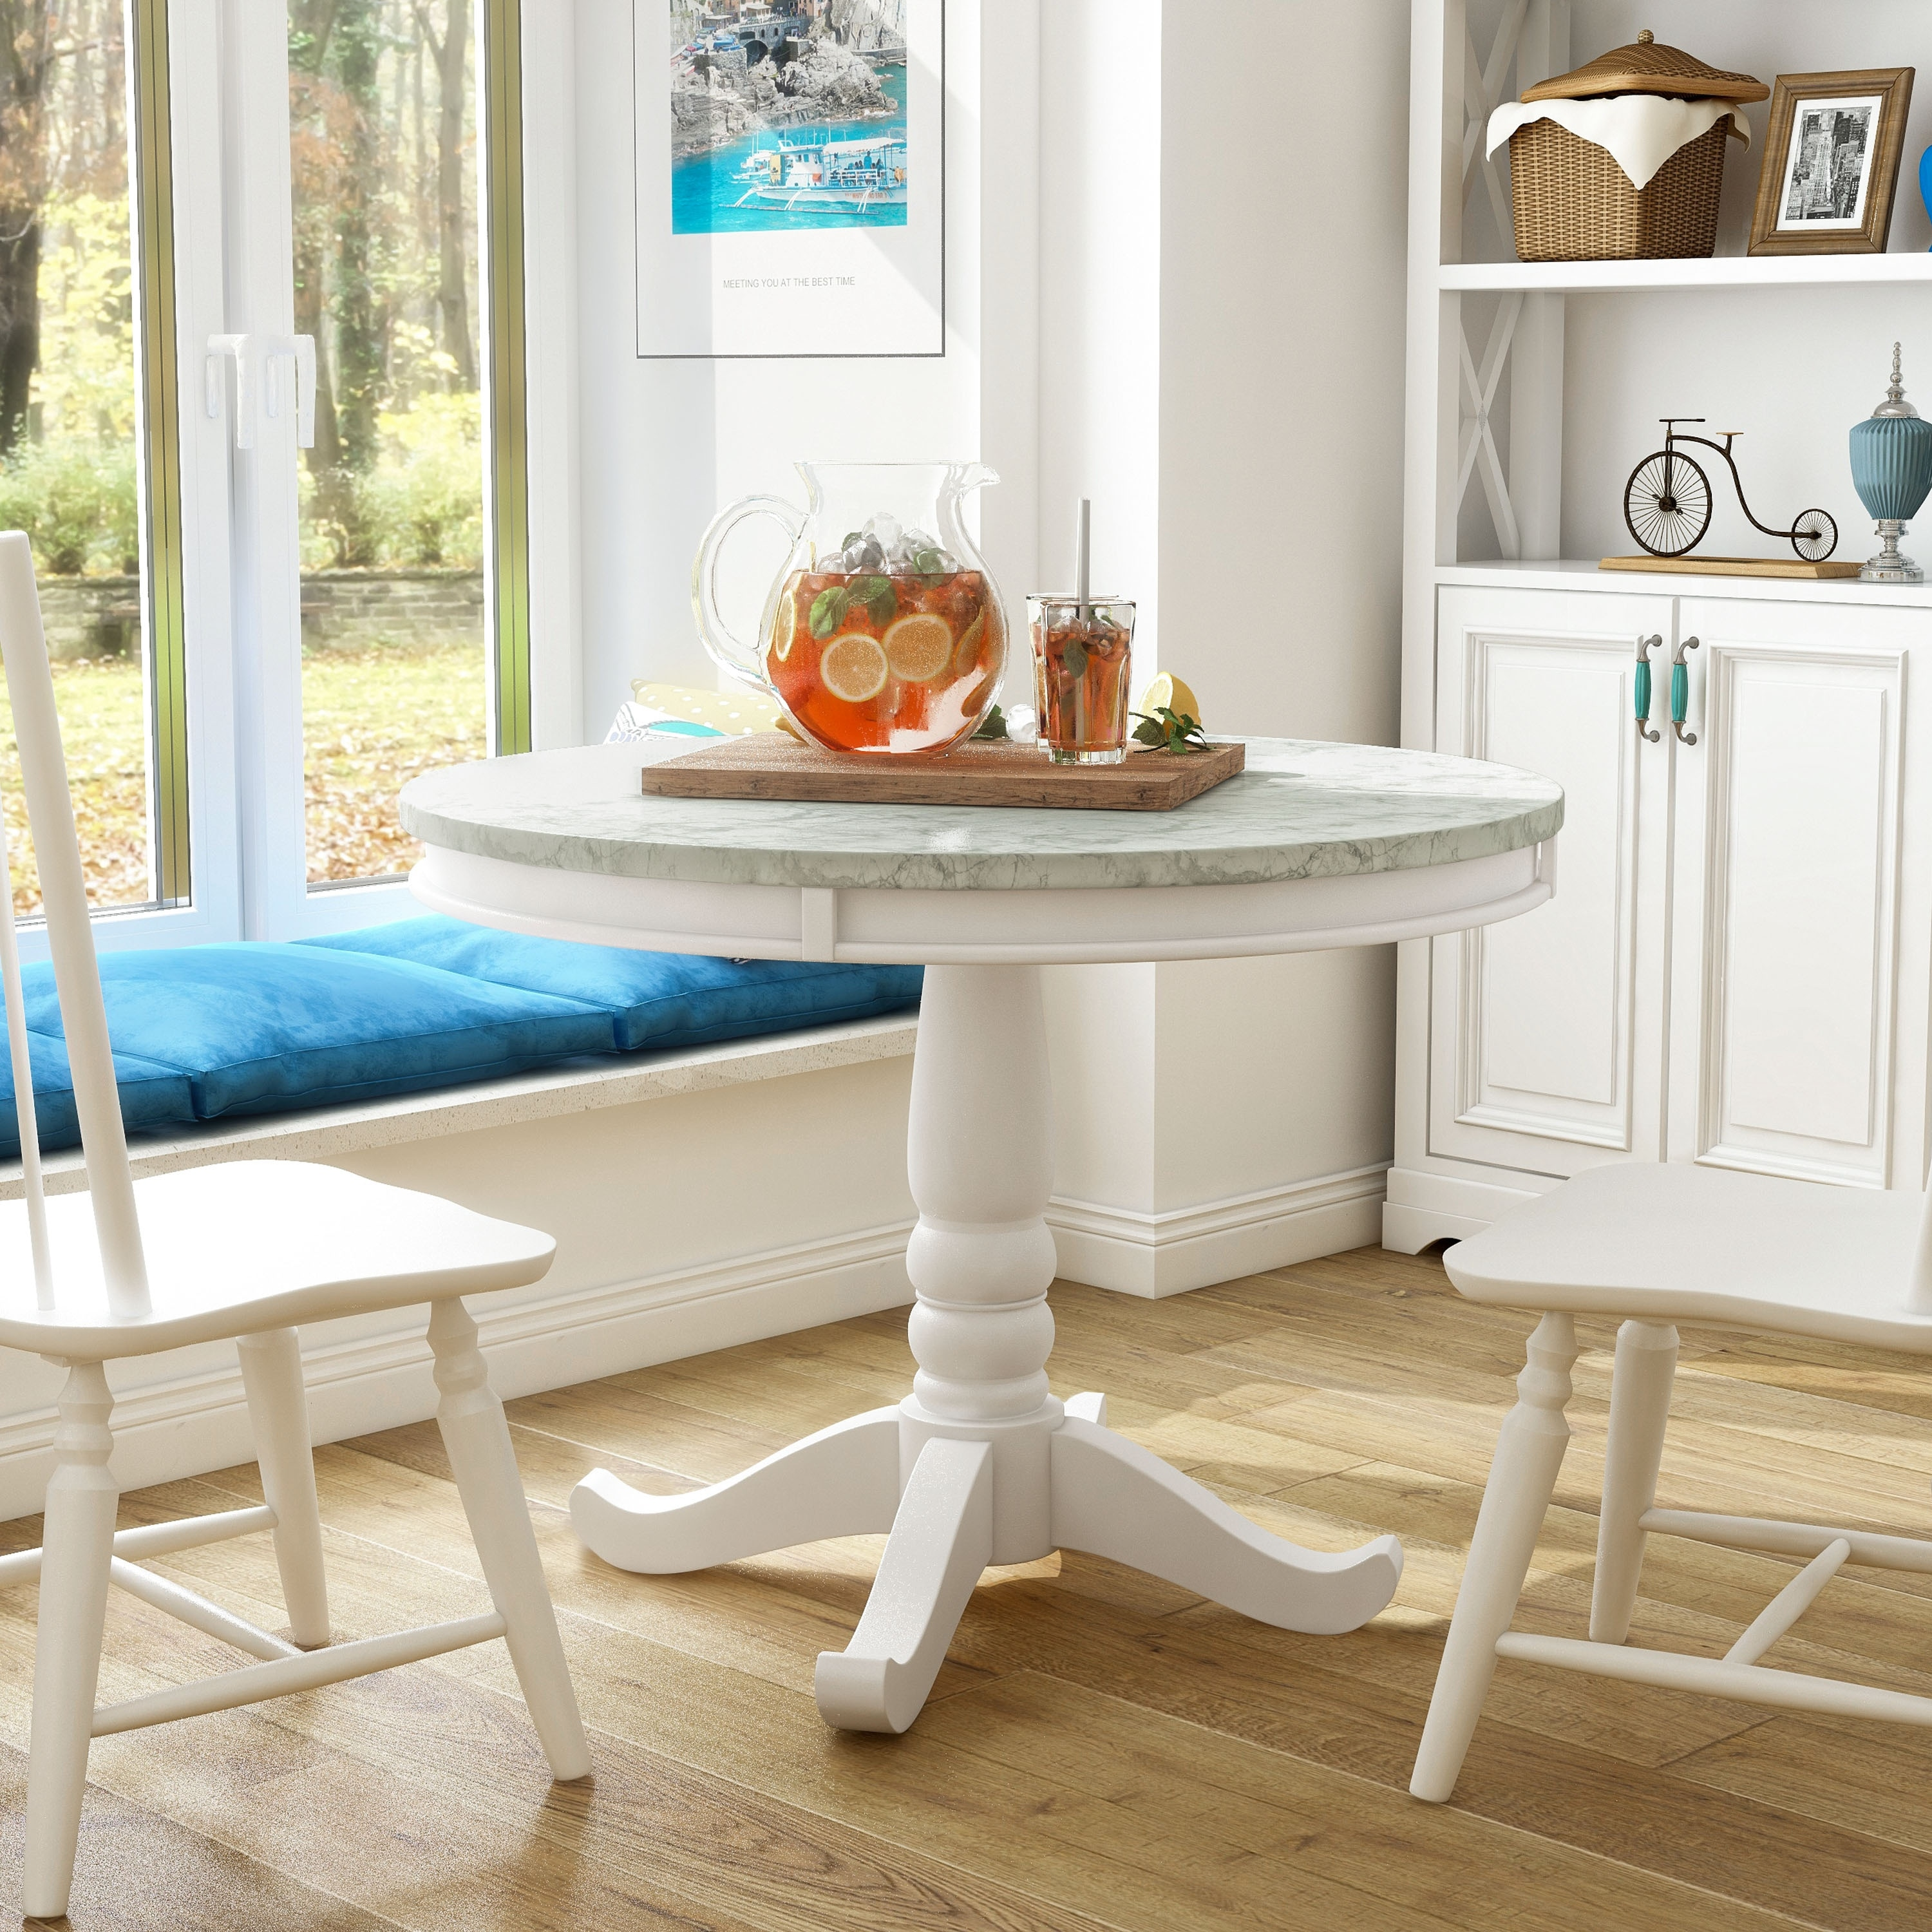 Furniture of America Ten Country 9 inch Round Dining Table